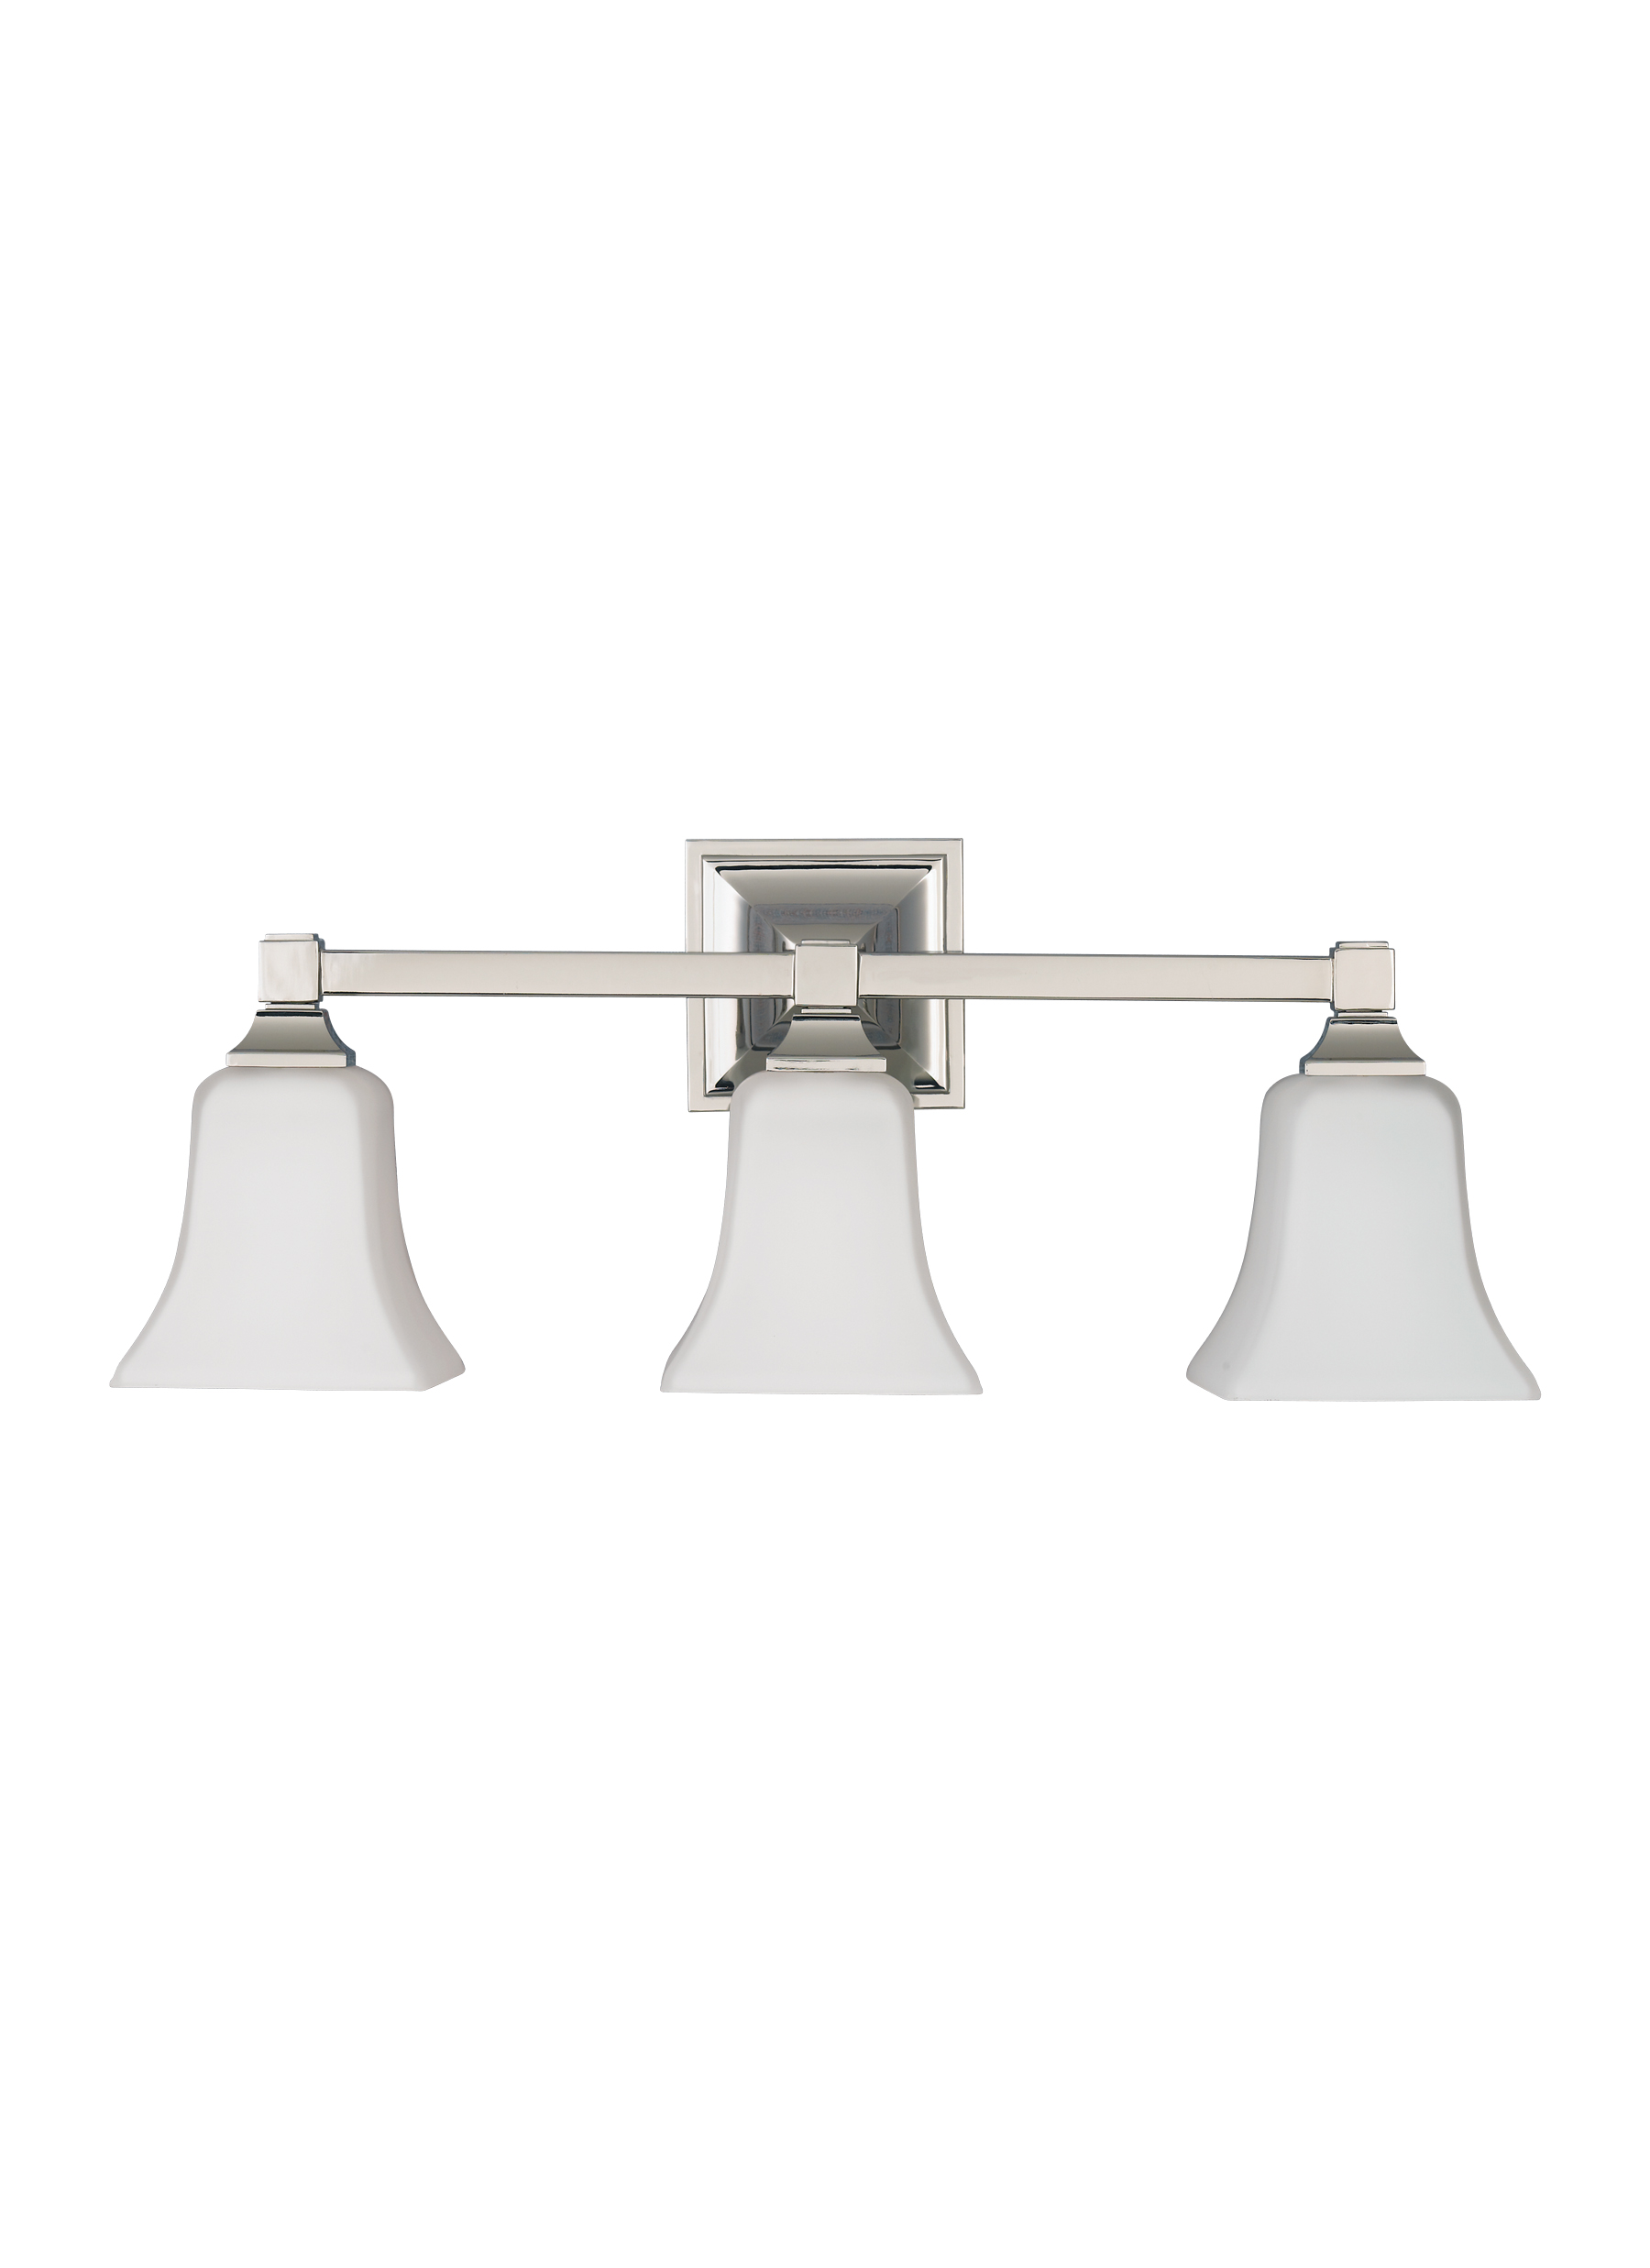 Bathroom Lighting Fixtures Polished Nickel vs12403-pn,3 - light vanity fixture,polished nickel